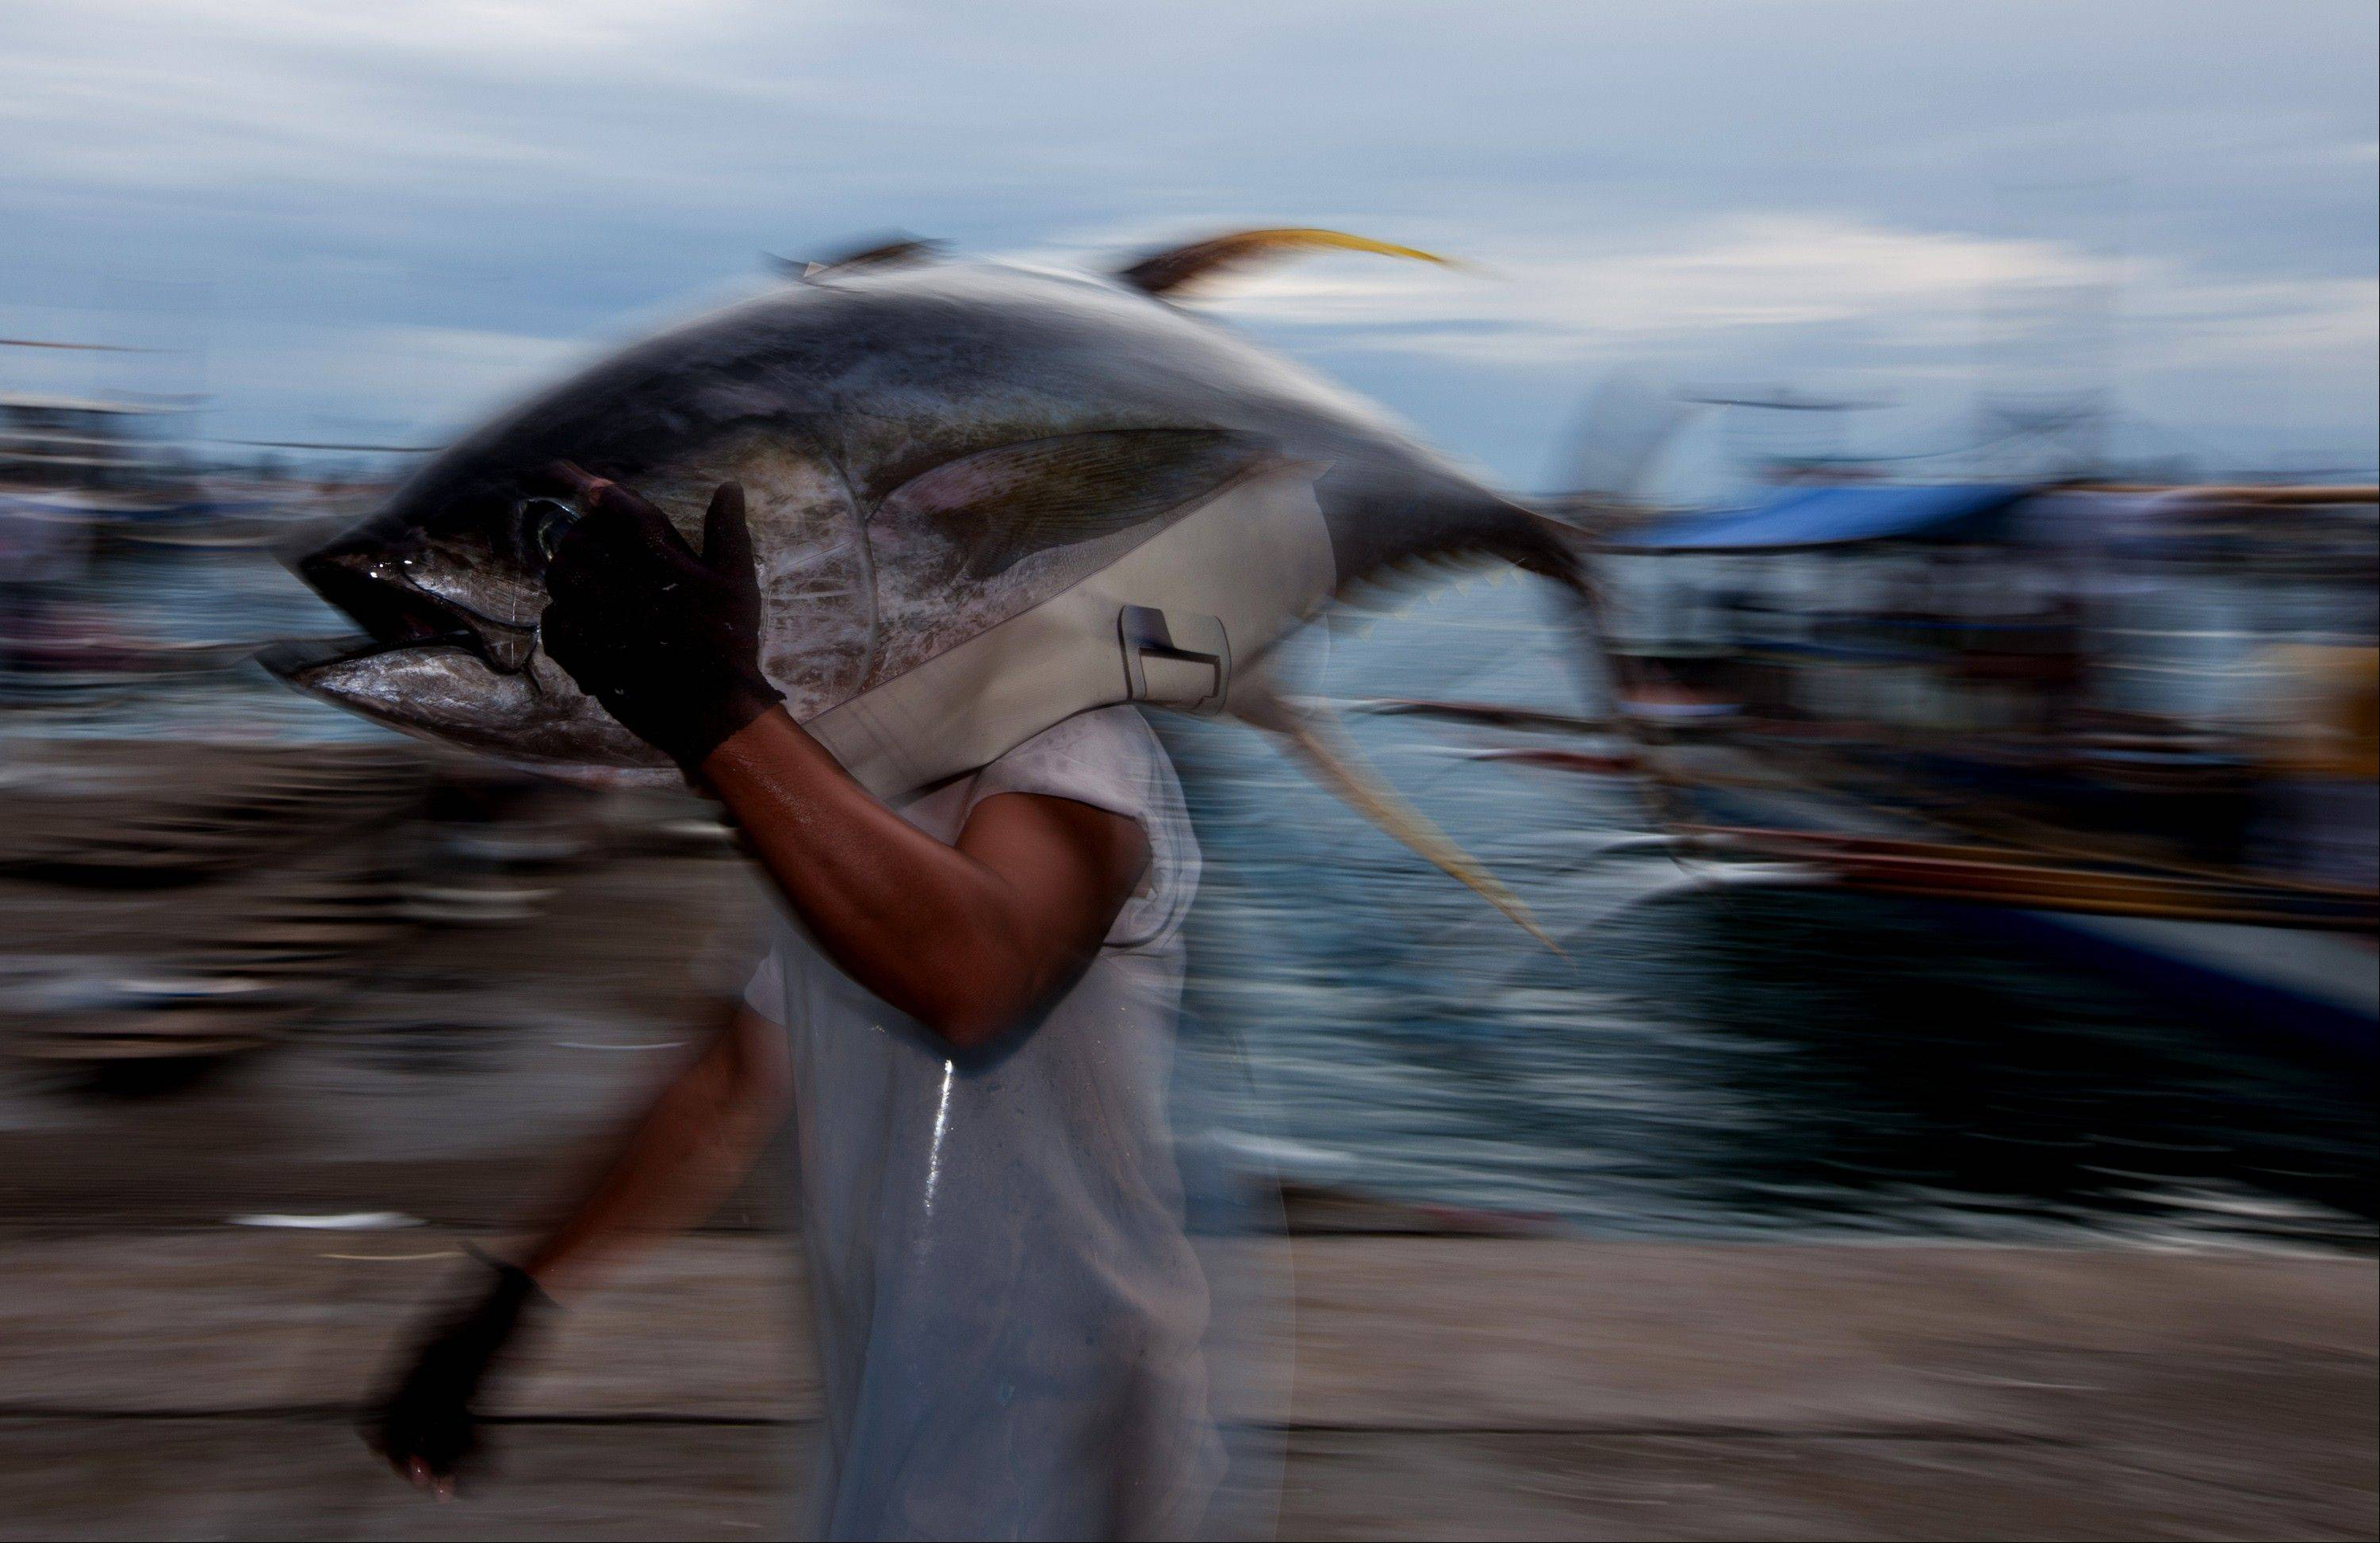 A fish porter carries a fresh tuna at the General Santos Fish Port Complex in General Santos, the Philippines, on Monday, Jan. 23, 2012. Philippine exports will probably rise by 10 percent or more this year after a decline in 2011, trade secretary Gregory Domingo told reporters Jan. 16.